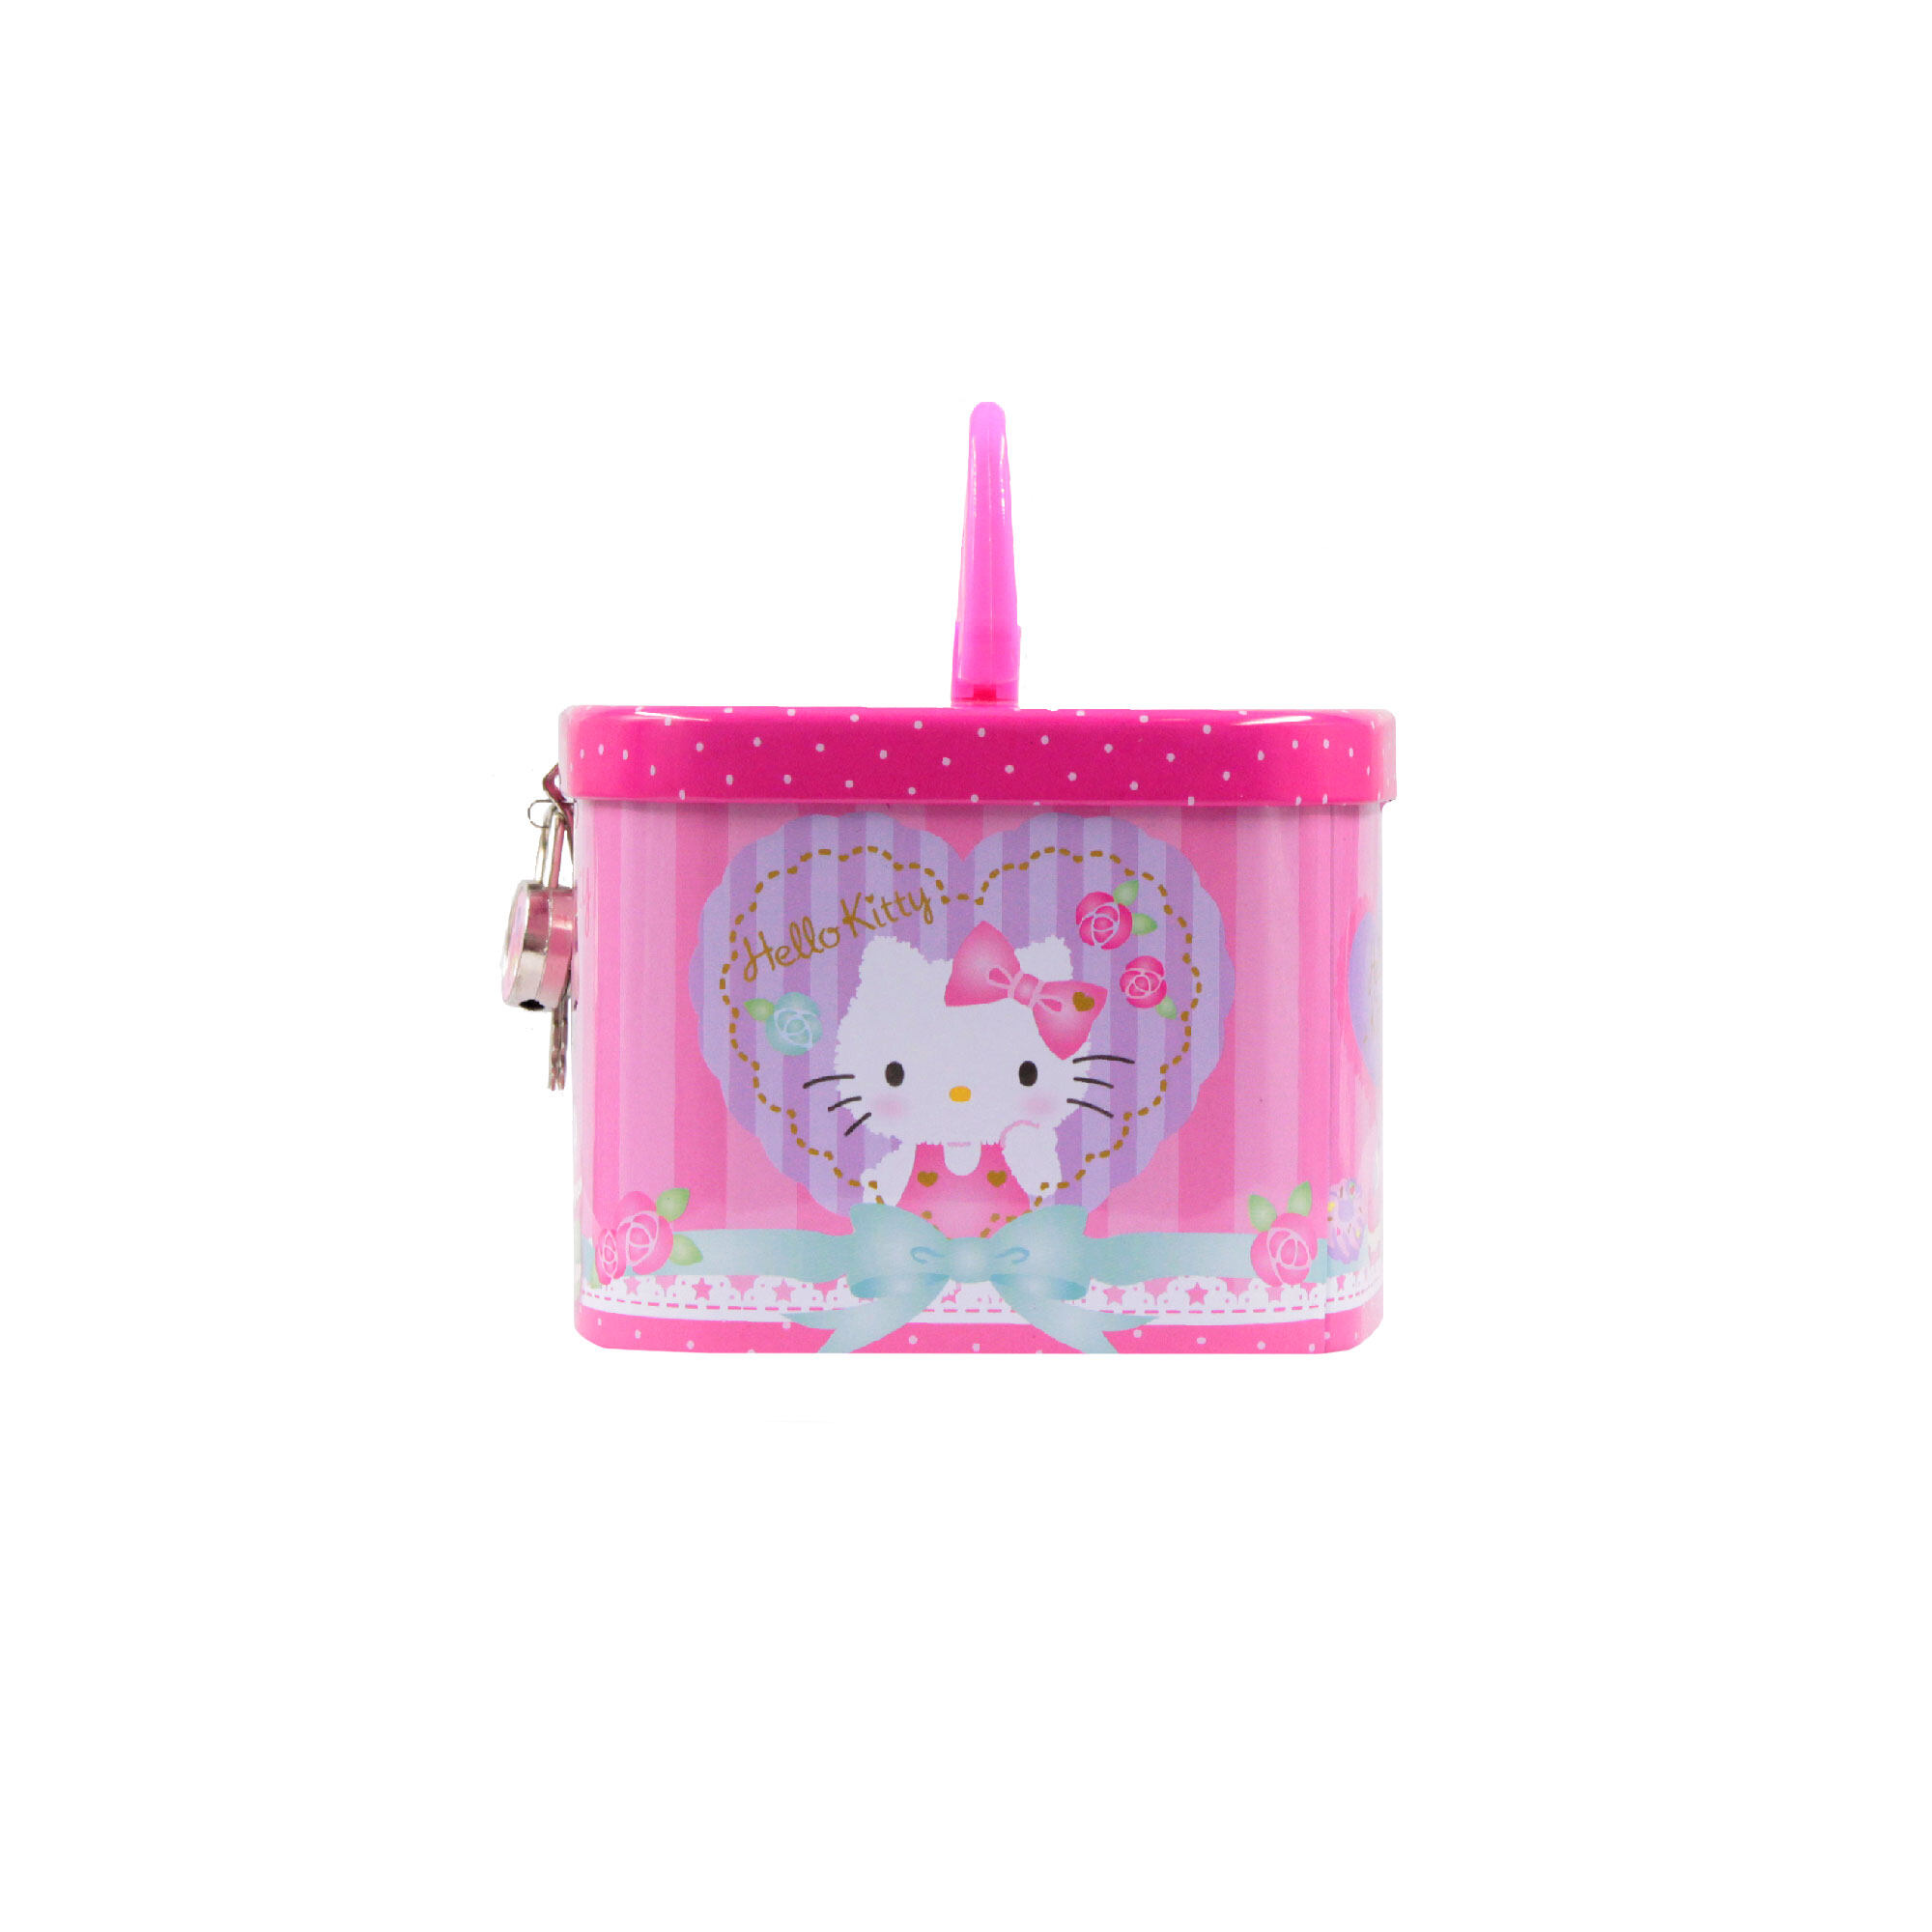 Sanrio Hello Kitty Children Coin Bank With Lock - Pink Colour